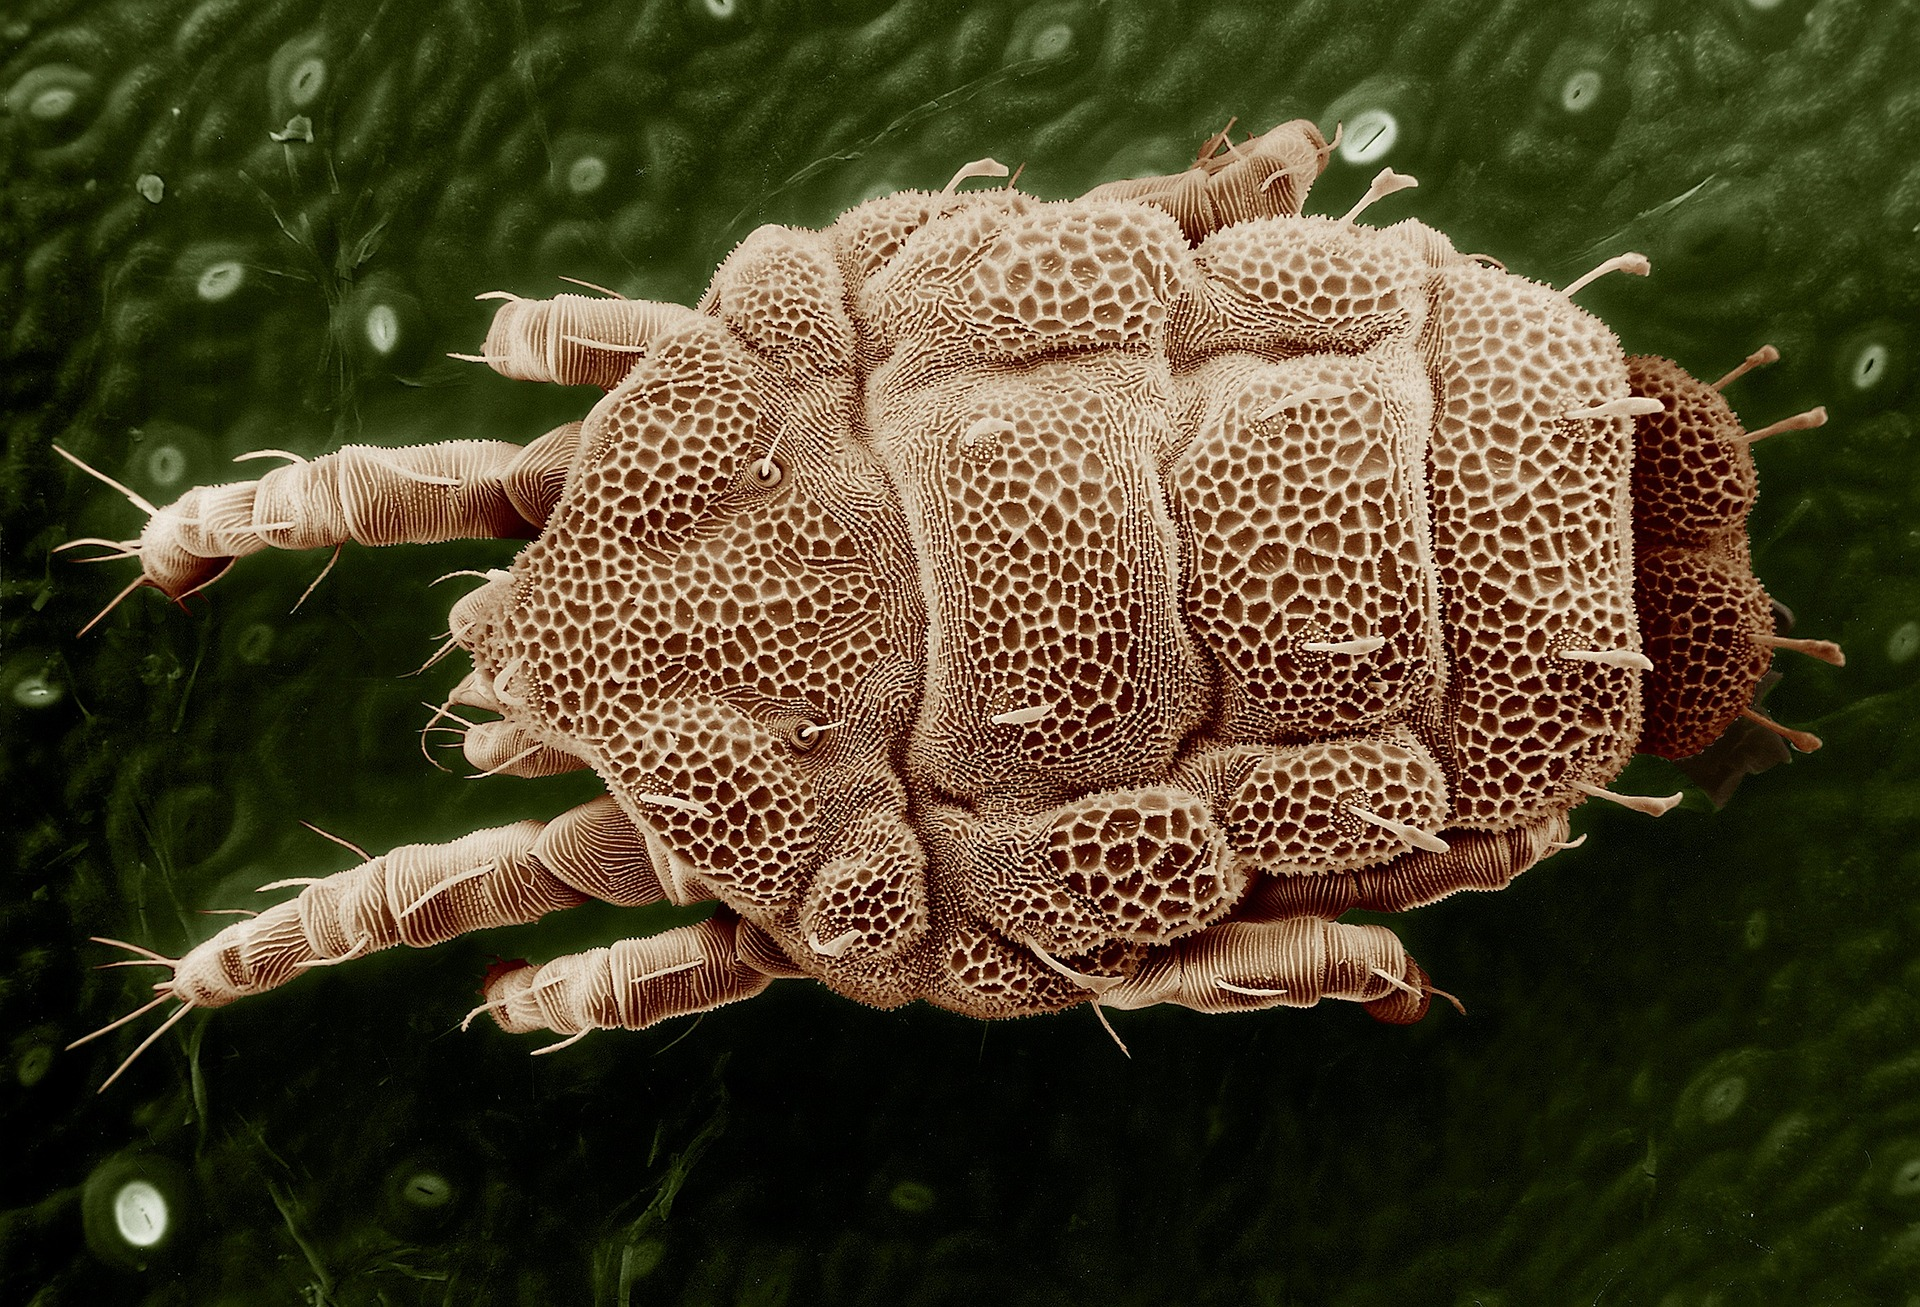 Acari: - Acari are the group of Arachnids including mites and ticks. Mites are both very diverse and very common in soil, accounting for up to 40% of total soil microarthropods. Mites have specific feeding patterns and different species feed on microbes (bacteria and fungi), dead plants and animals, and other soil animals.